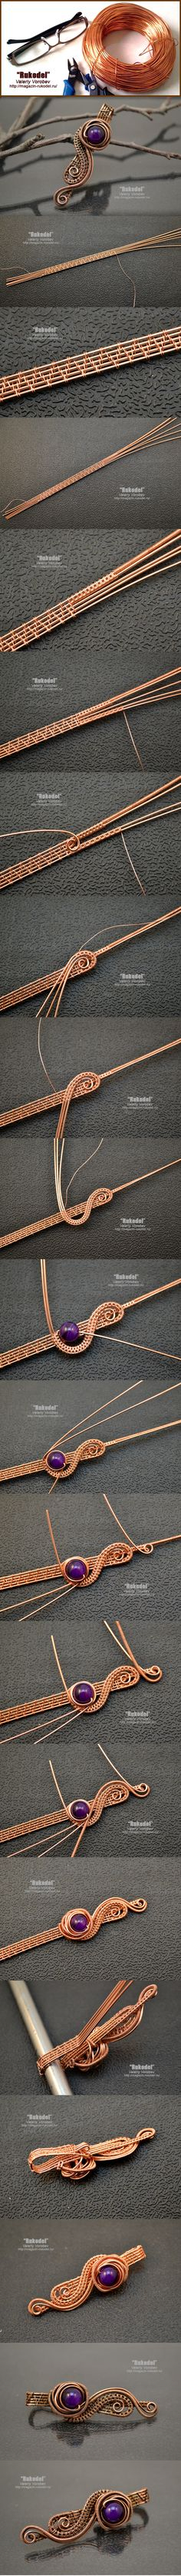 Wire Wrap Pendant - tutorial - magazin-rukodel.ru/